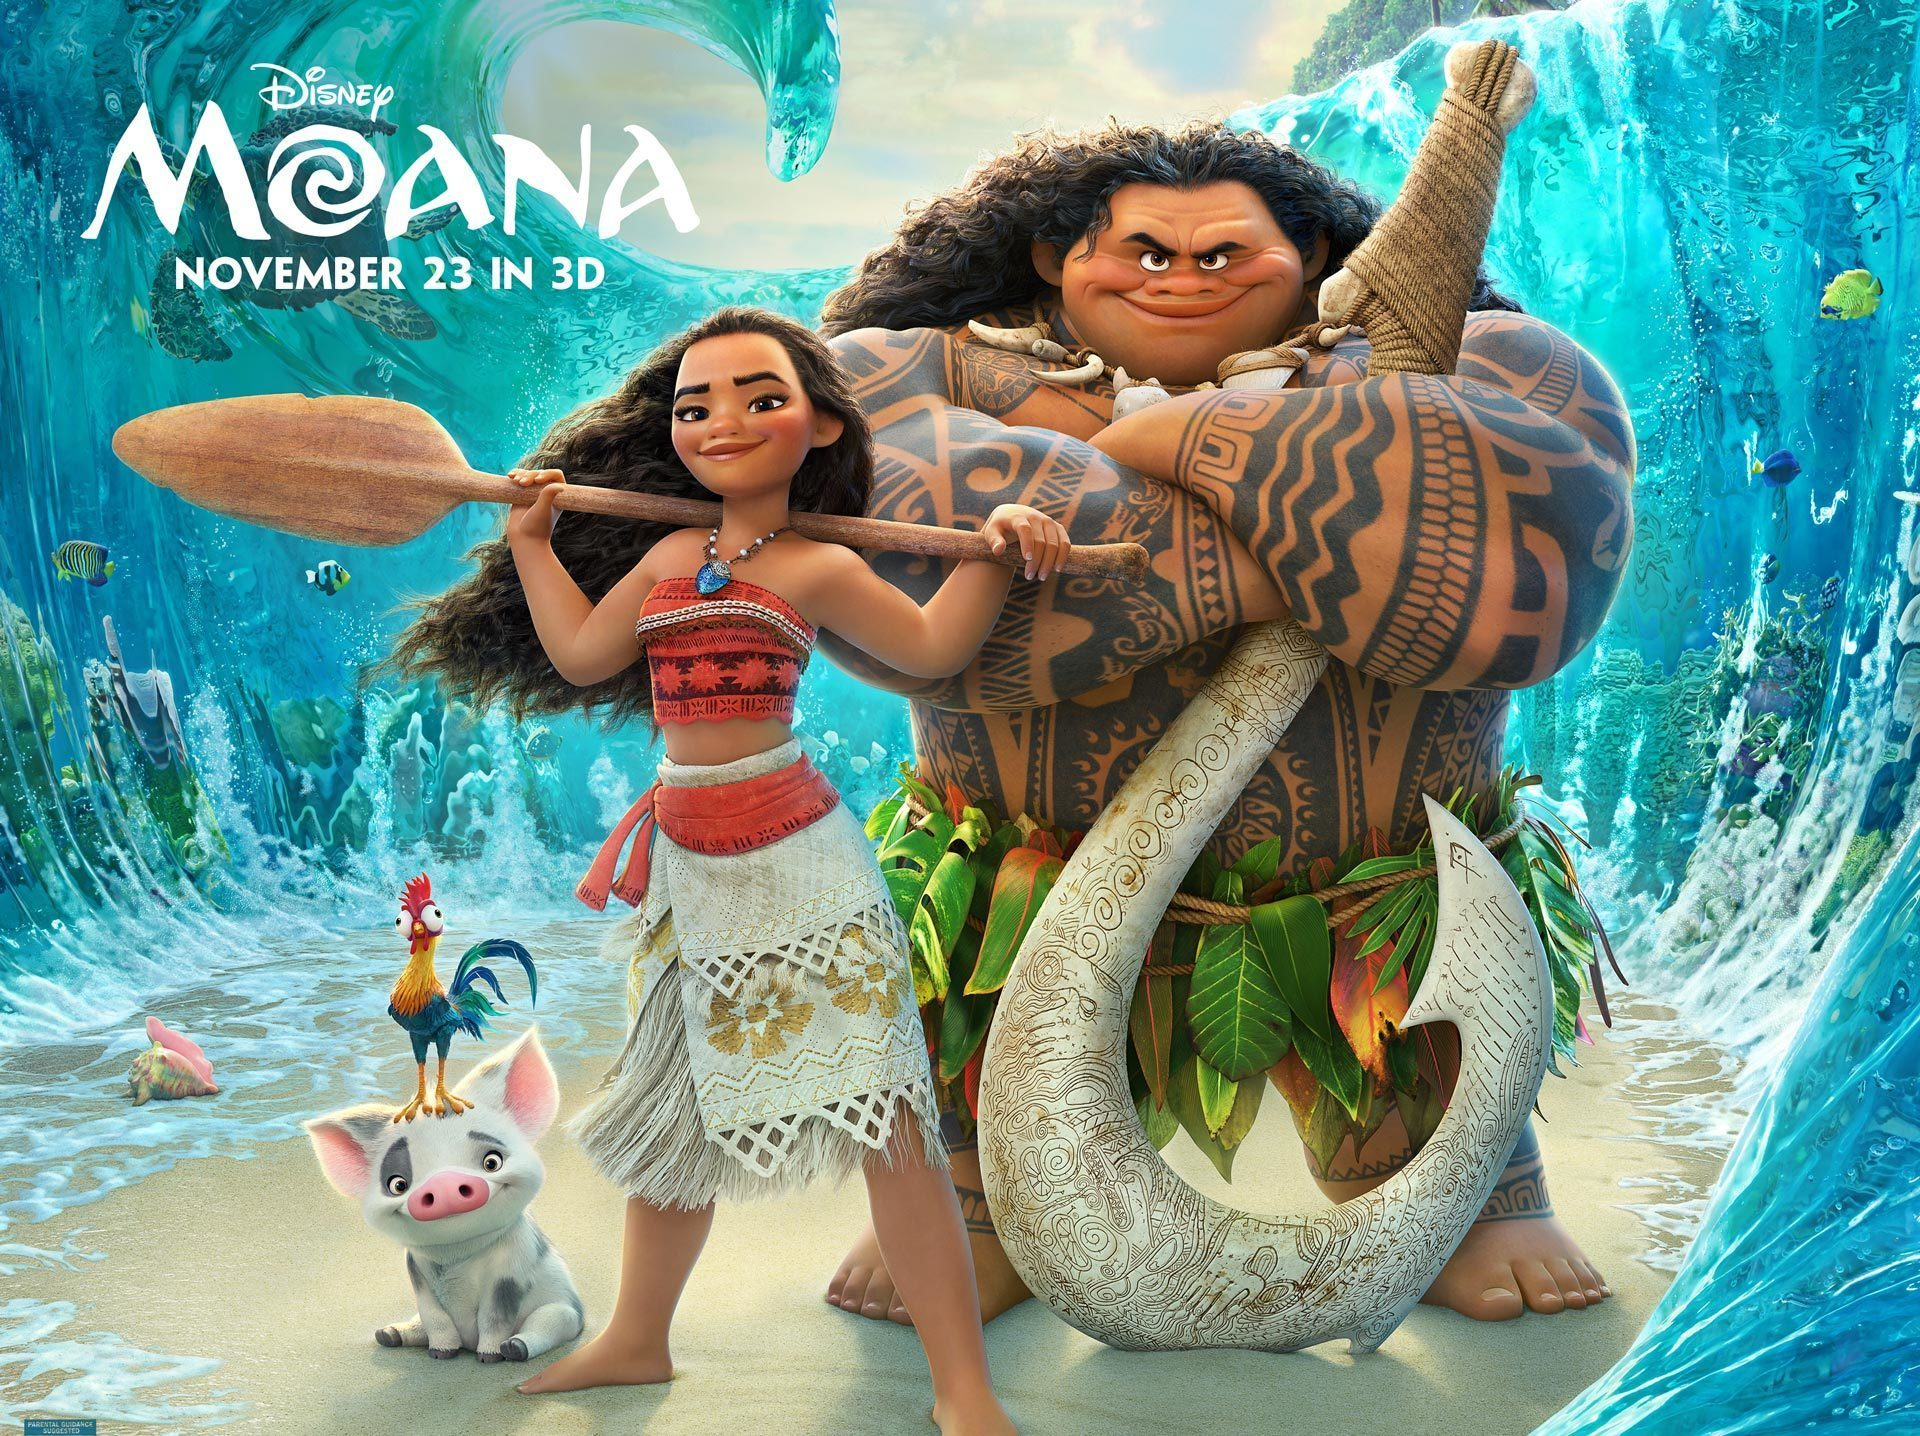 flex_moana_header_ddaba7de.jpeg?region=0